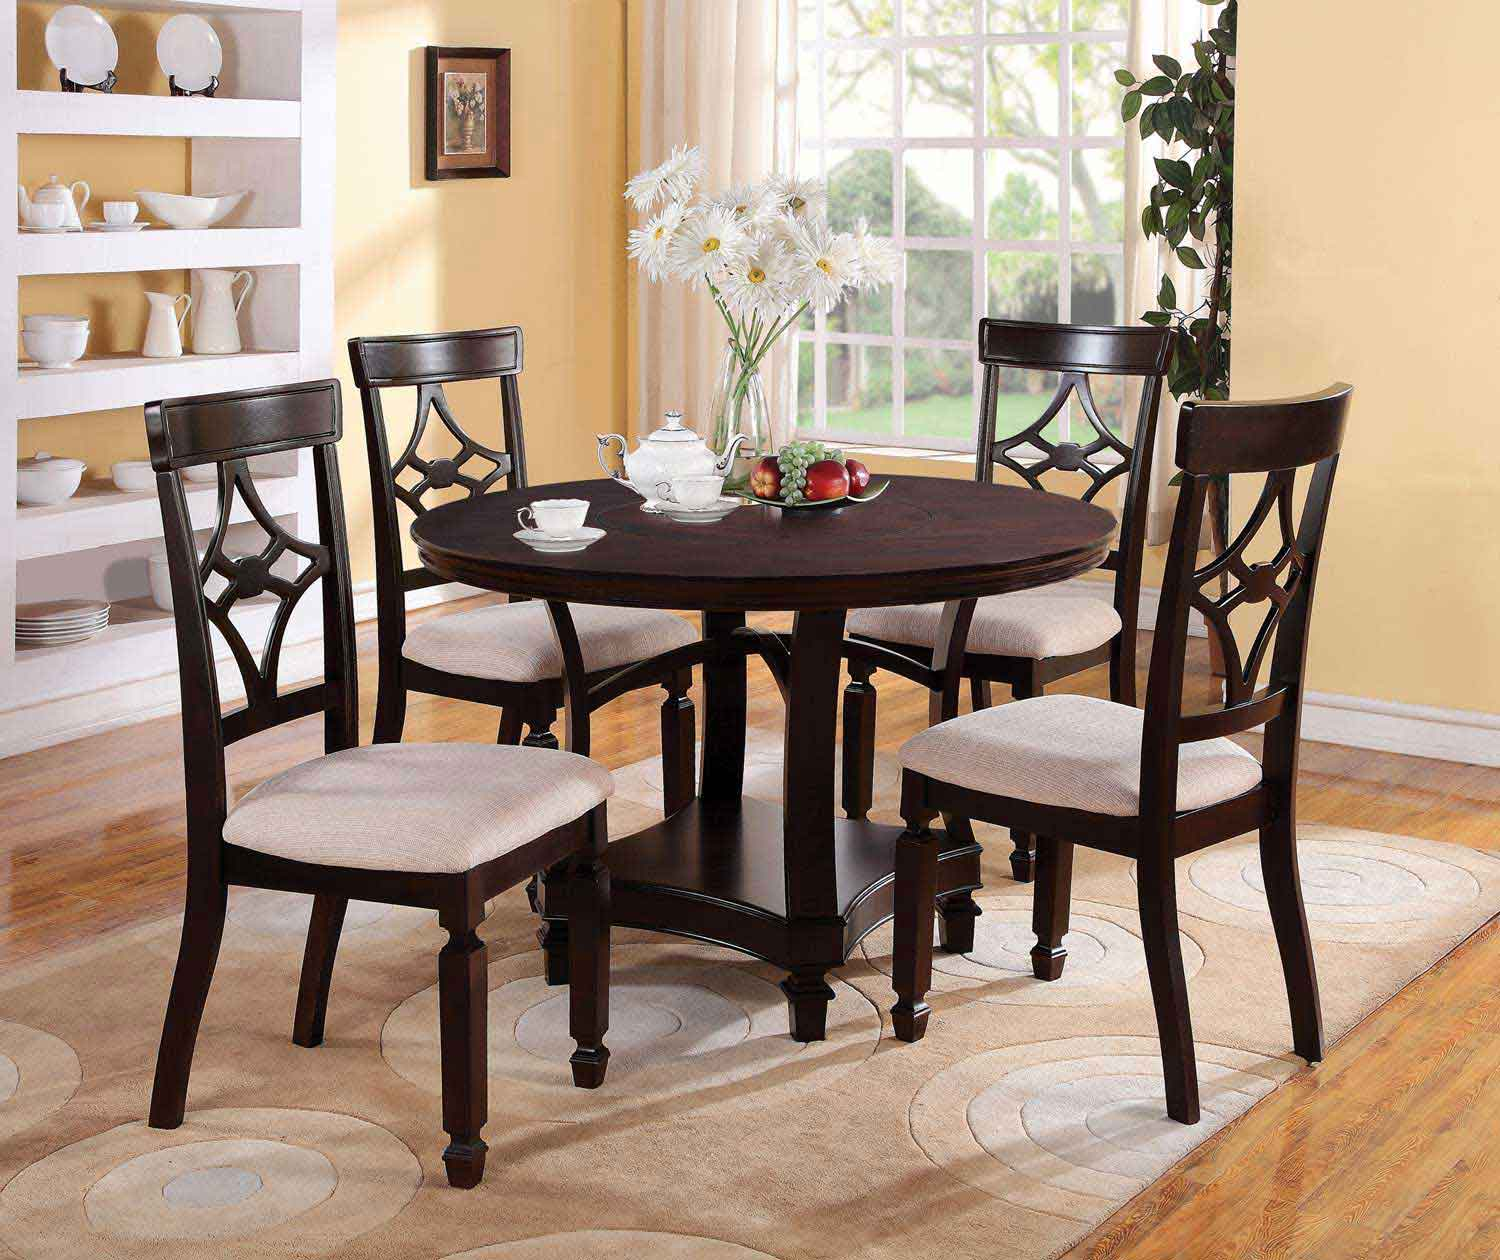 Coaster Maude Round Dining Set - Cappuccino